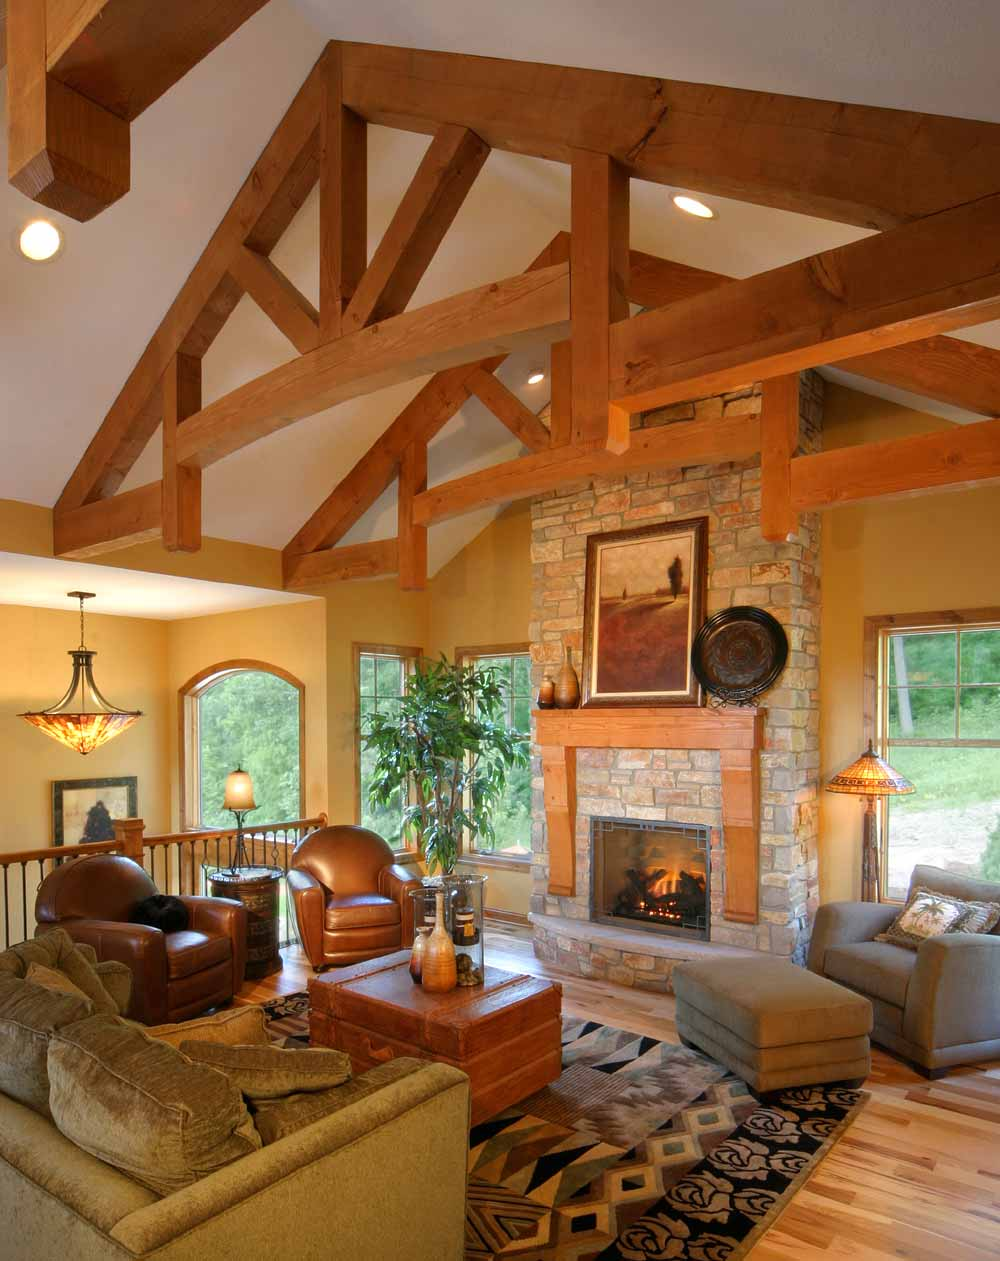 Room In Attic Truss Design: Structural Wood Corporation: Glulam Appearance Upgrades